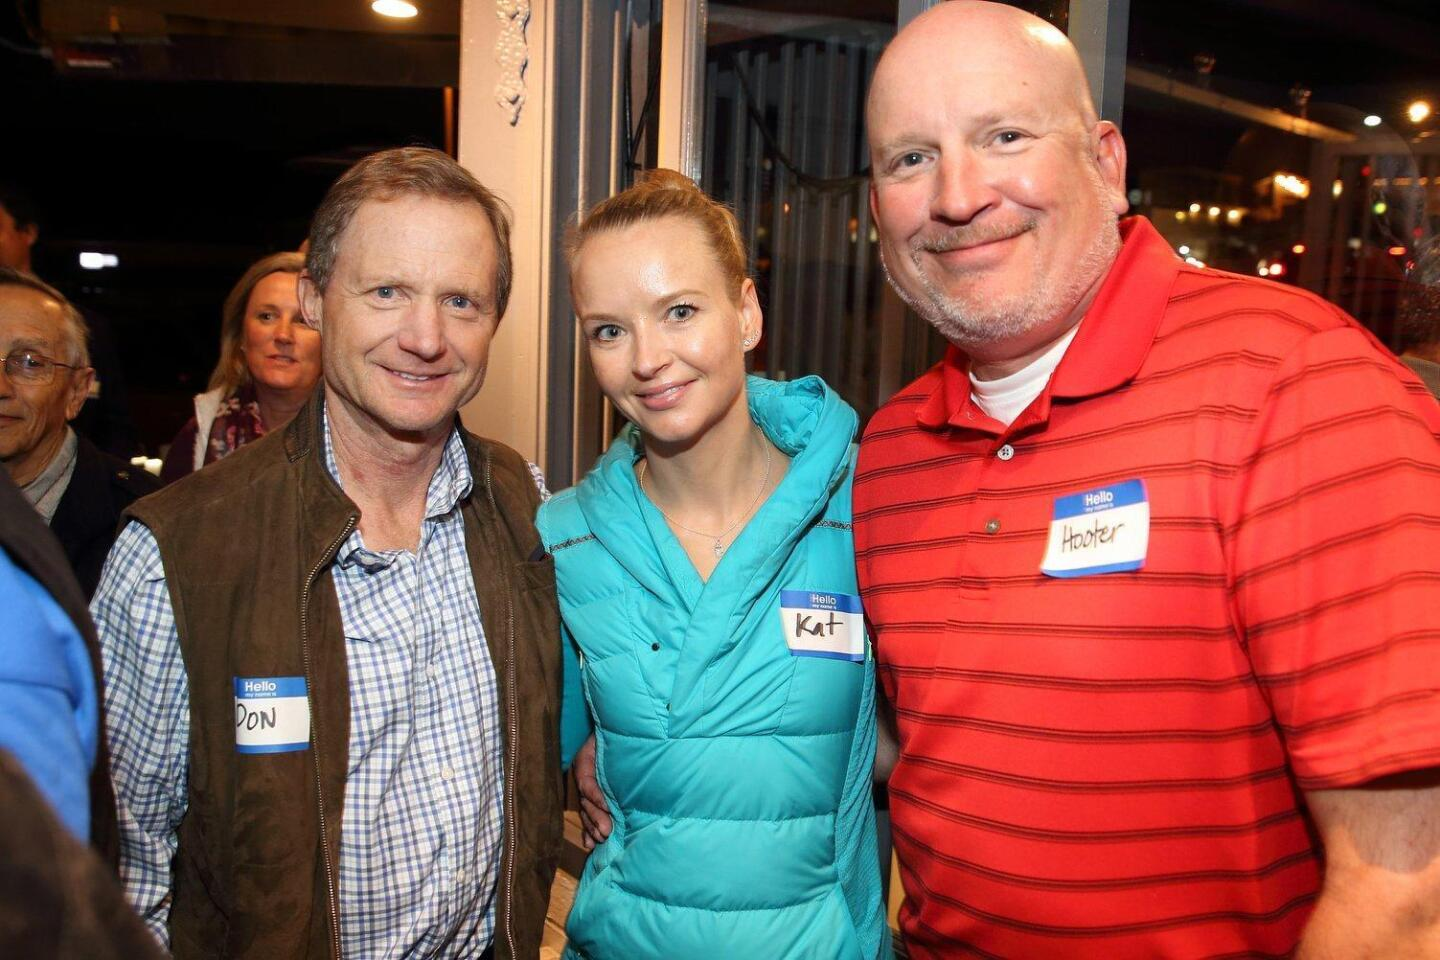 Don Ankeny, Kat Henning, Hooter Houts